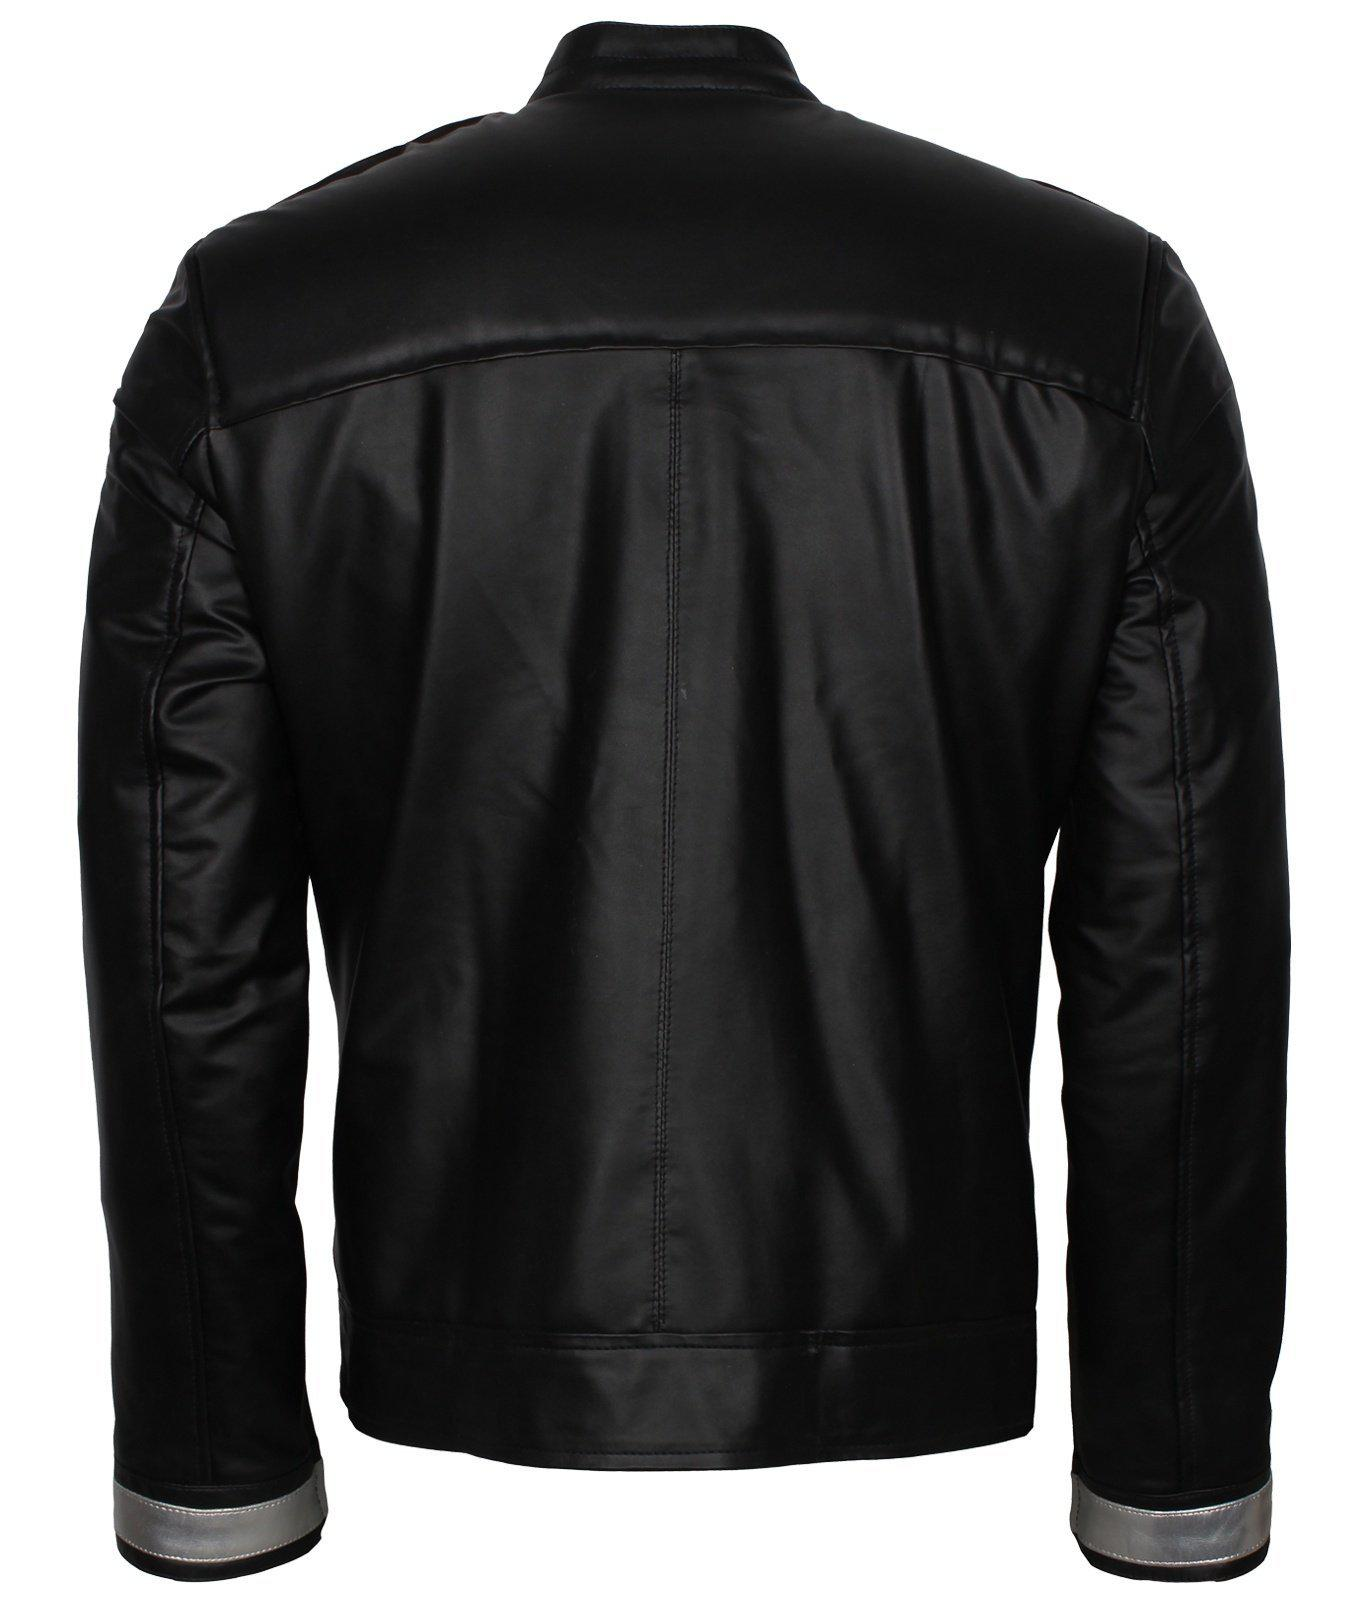 Agents of Shield jacket